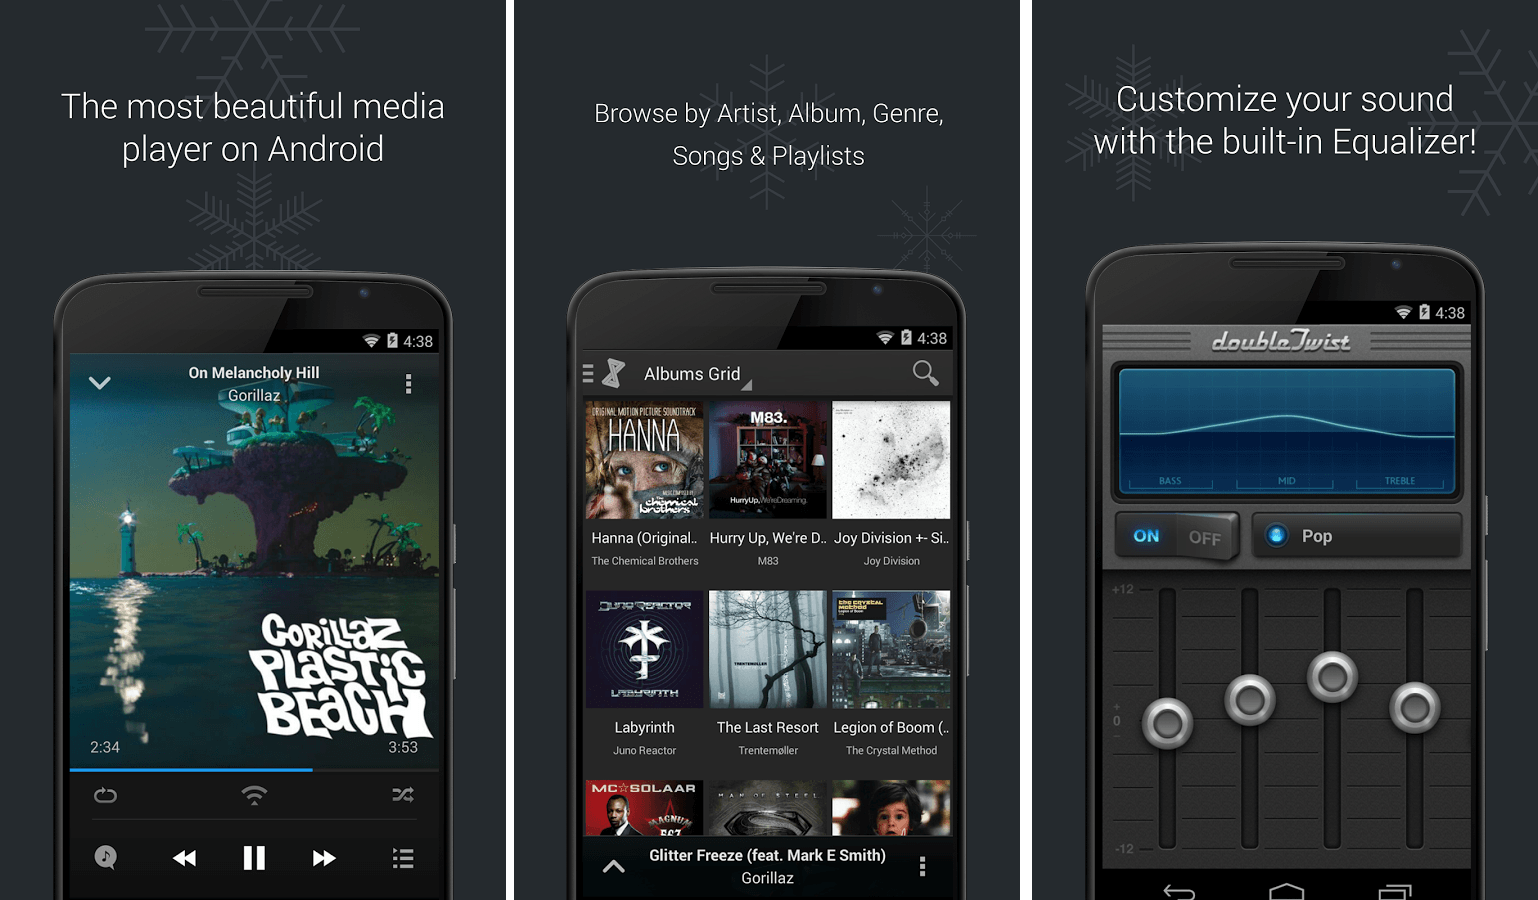 Doubletwist music player